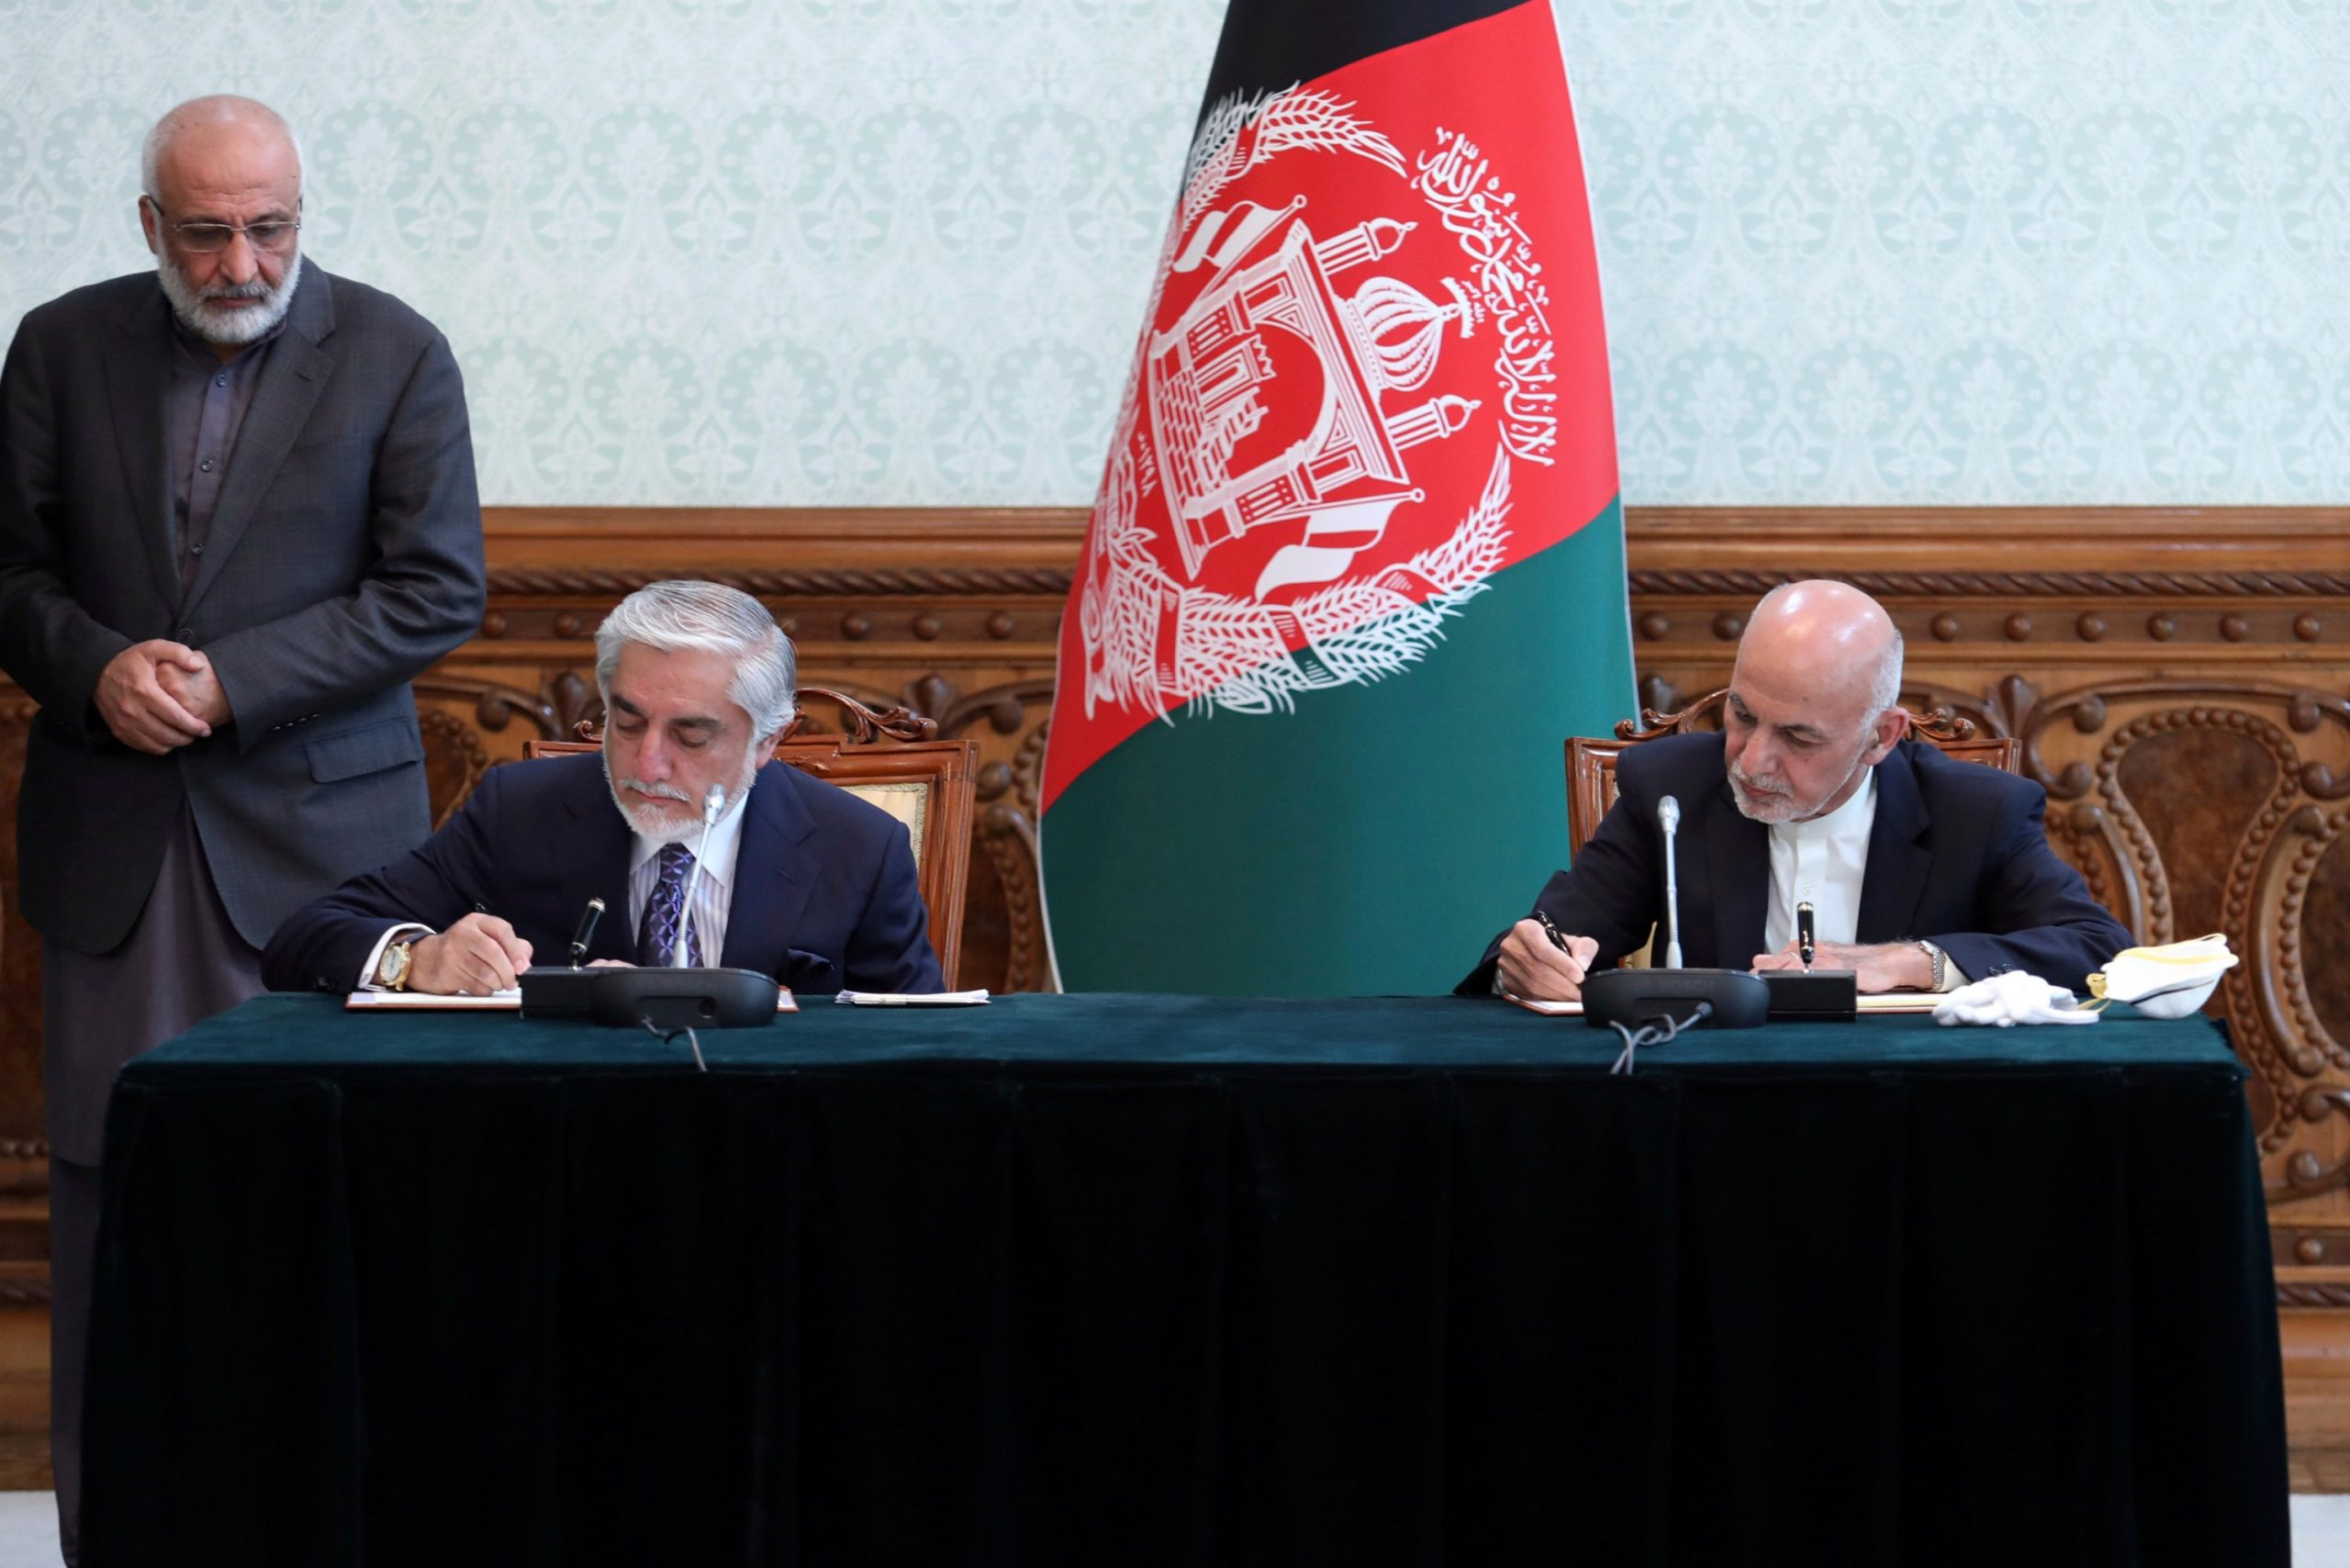 The deal, signed by both, states Ghani would remain president and calls for Abdullah to lead the country's National Reconciliation High Council.